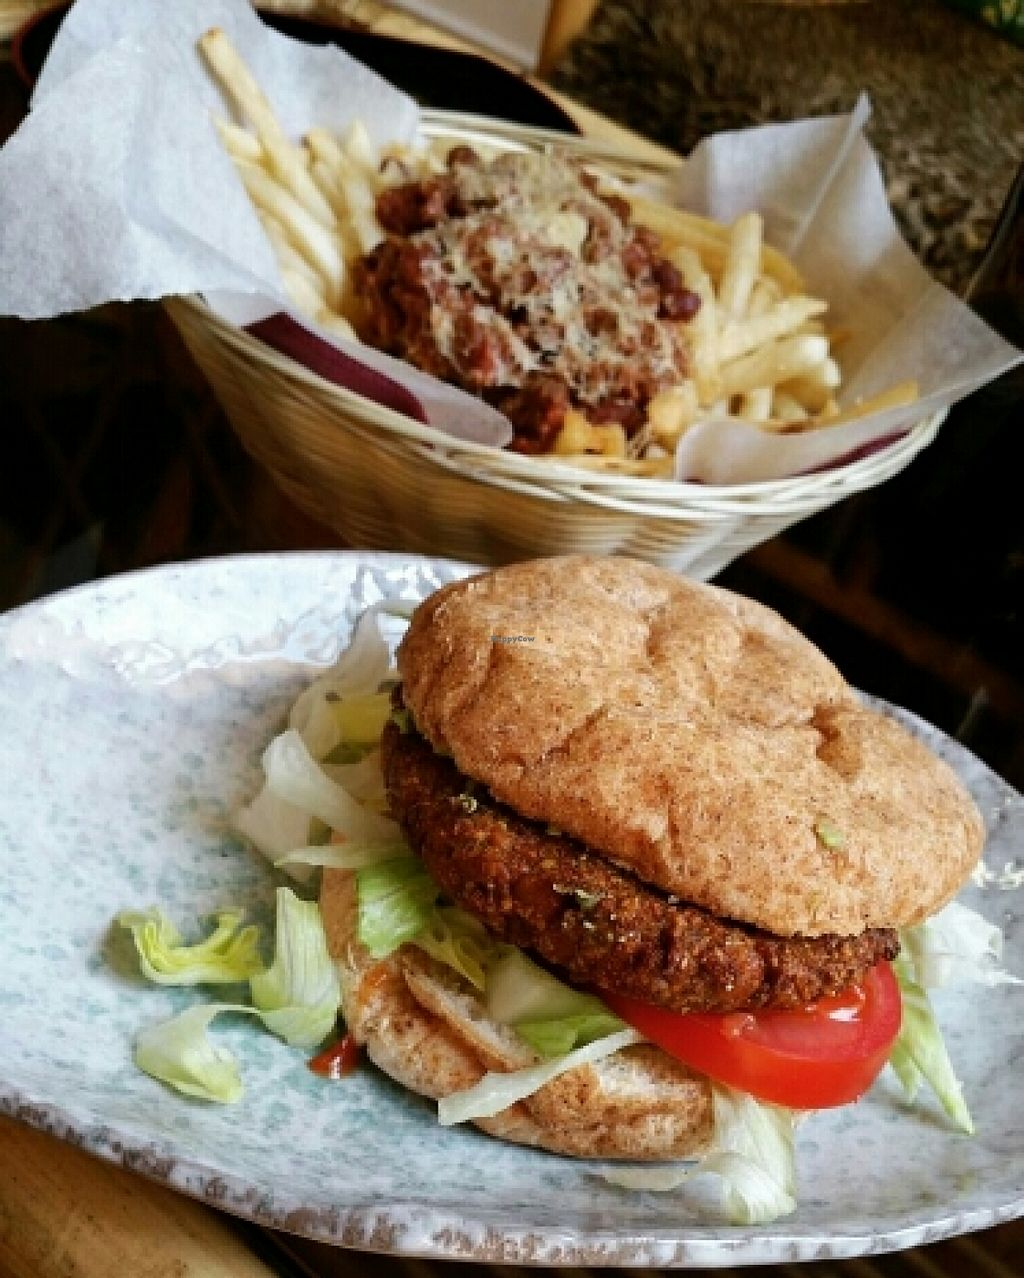 """Photo of Two-Bit Villains  by <a href=""""/members/profile/JanineBarthel"""">JanineBarthel</a> <br/>vegan burger and chili cheese fries <br/> March 3, 2016  - <a href='/contact/abuse/image/36150/138584'>Report</a>"""